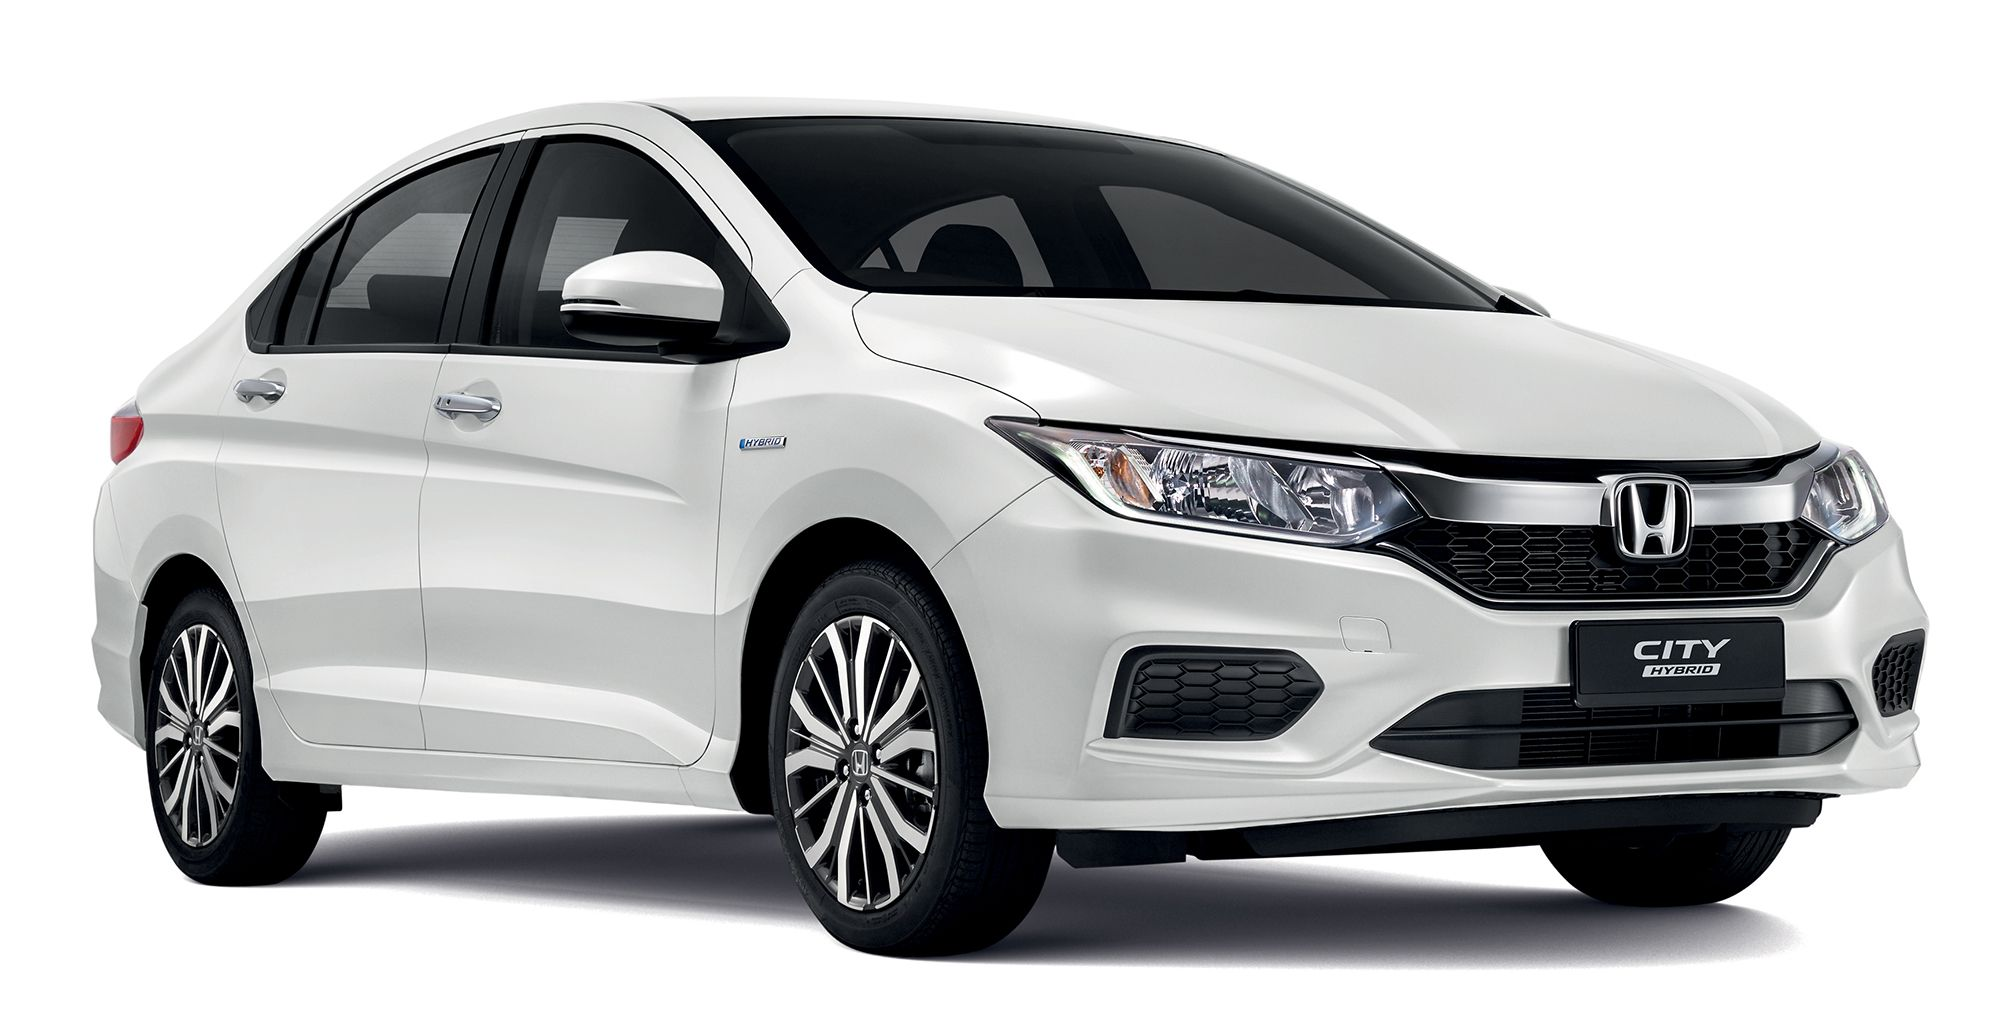 Honda City Hybrid Officially Launched In Malaysia Rm89 200 Slots Under Top Spec V In Price And Kit Honda City Honda Honda Fit